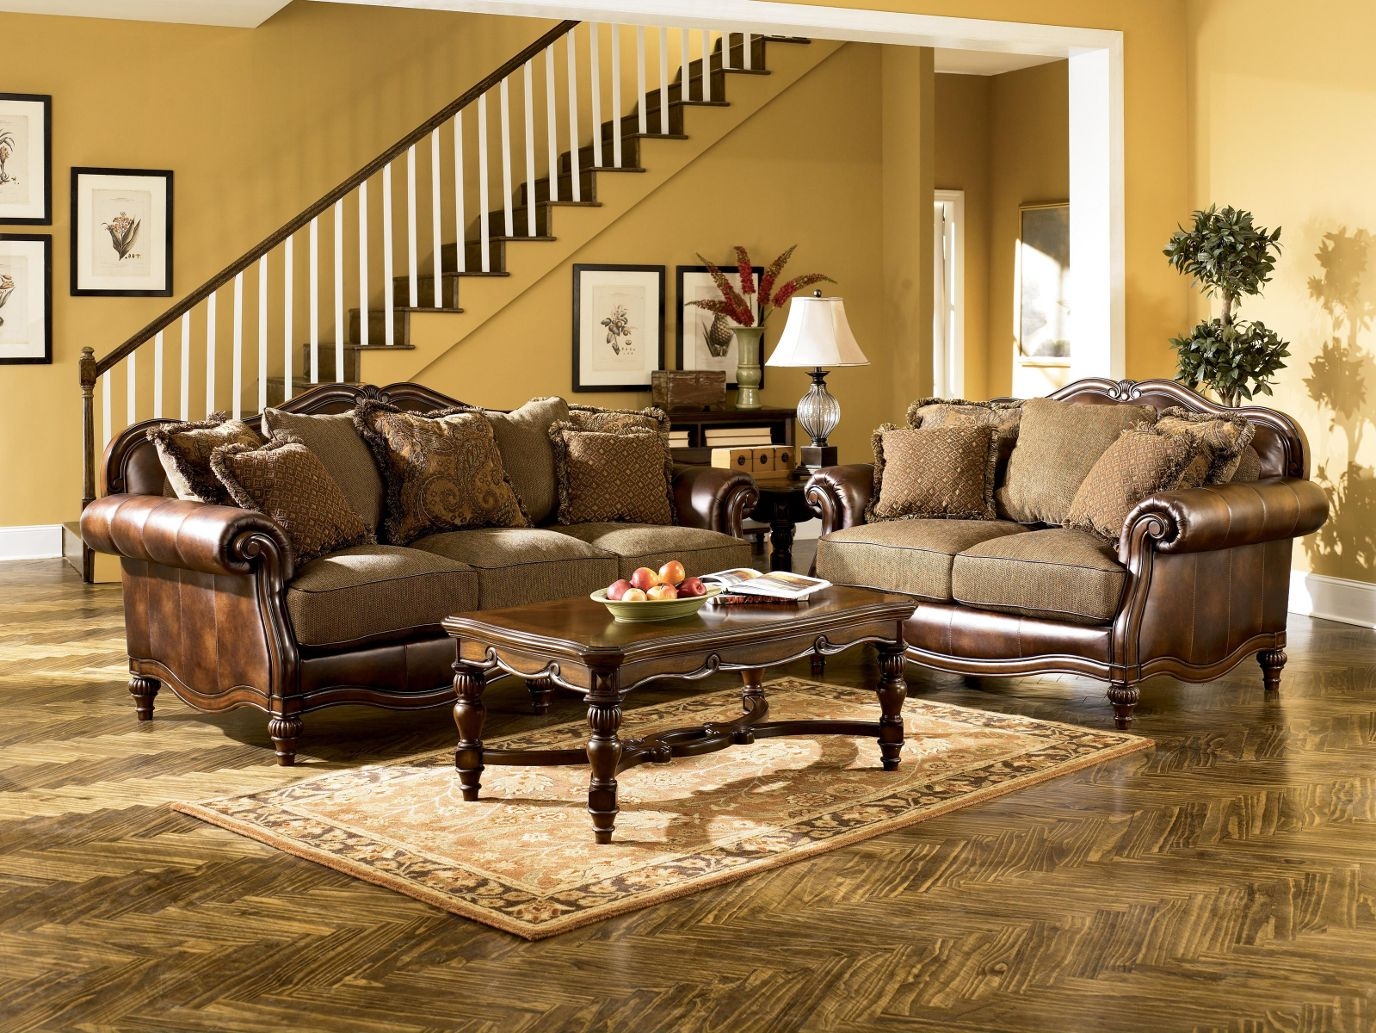 Claremore Antique Living Room Set By Ashley Furniture In Brooklyn At  Gogofurniture Com